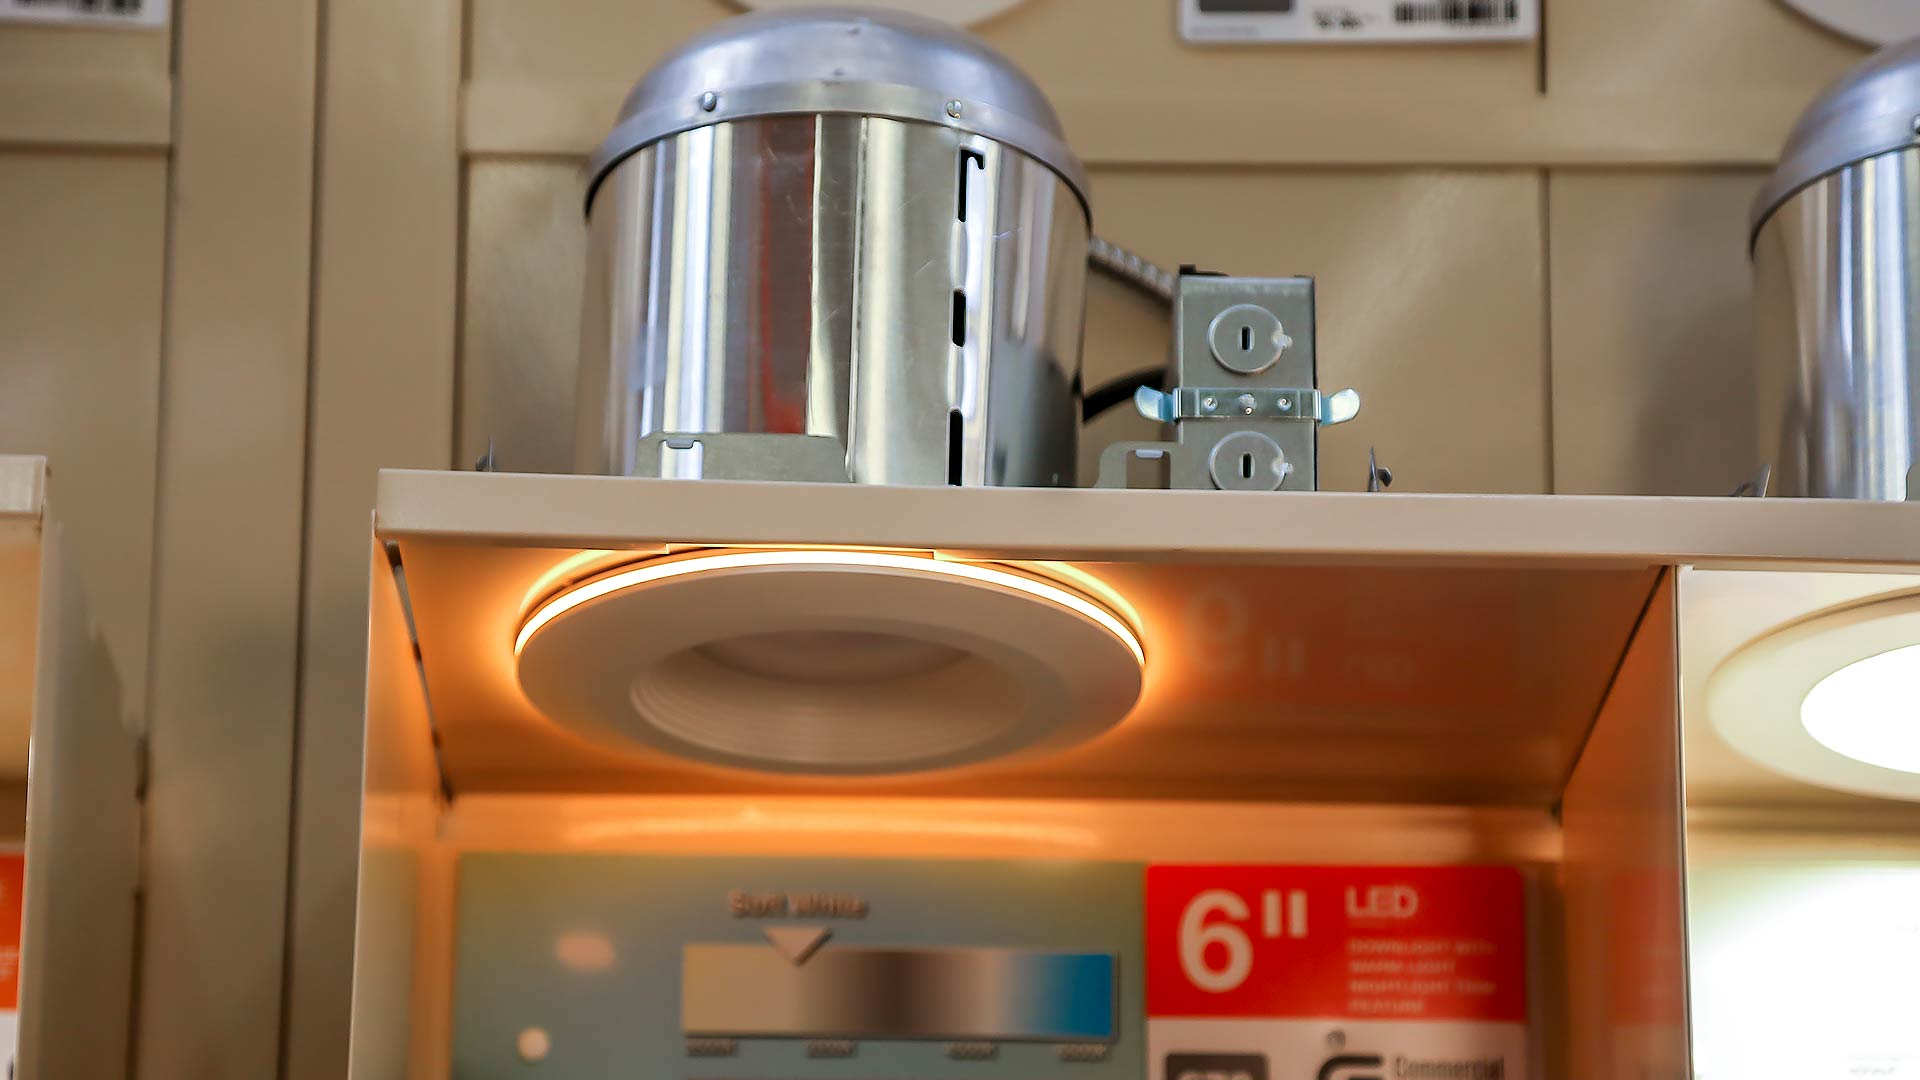 Commercial Electric can LED recessed lighting on display at The Home Depot